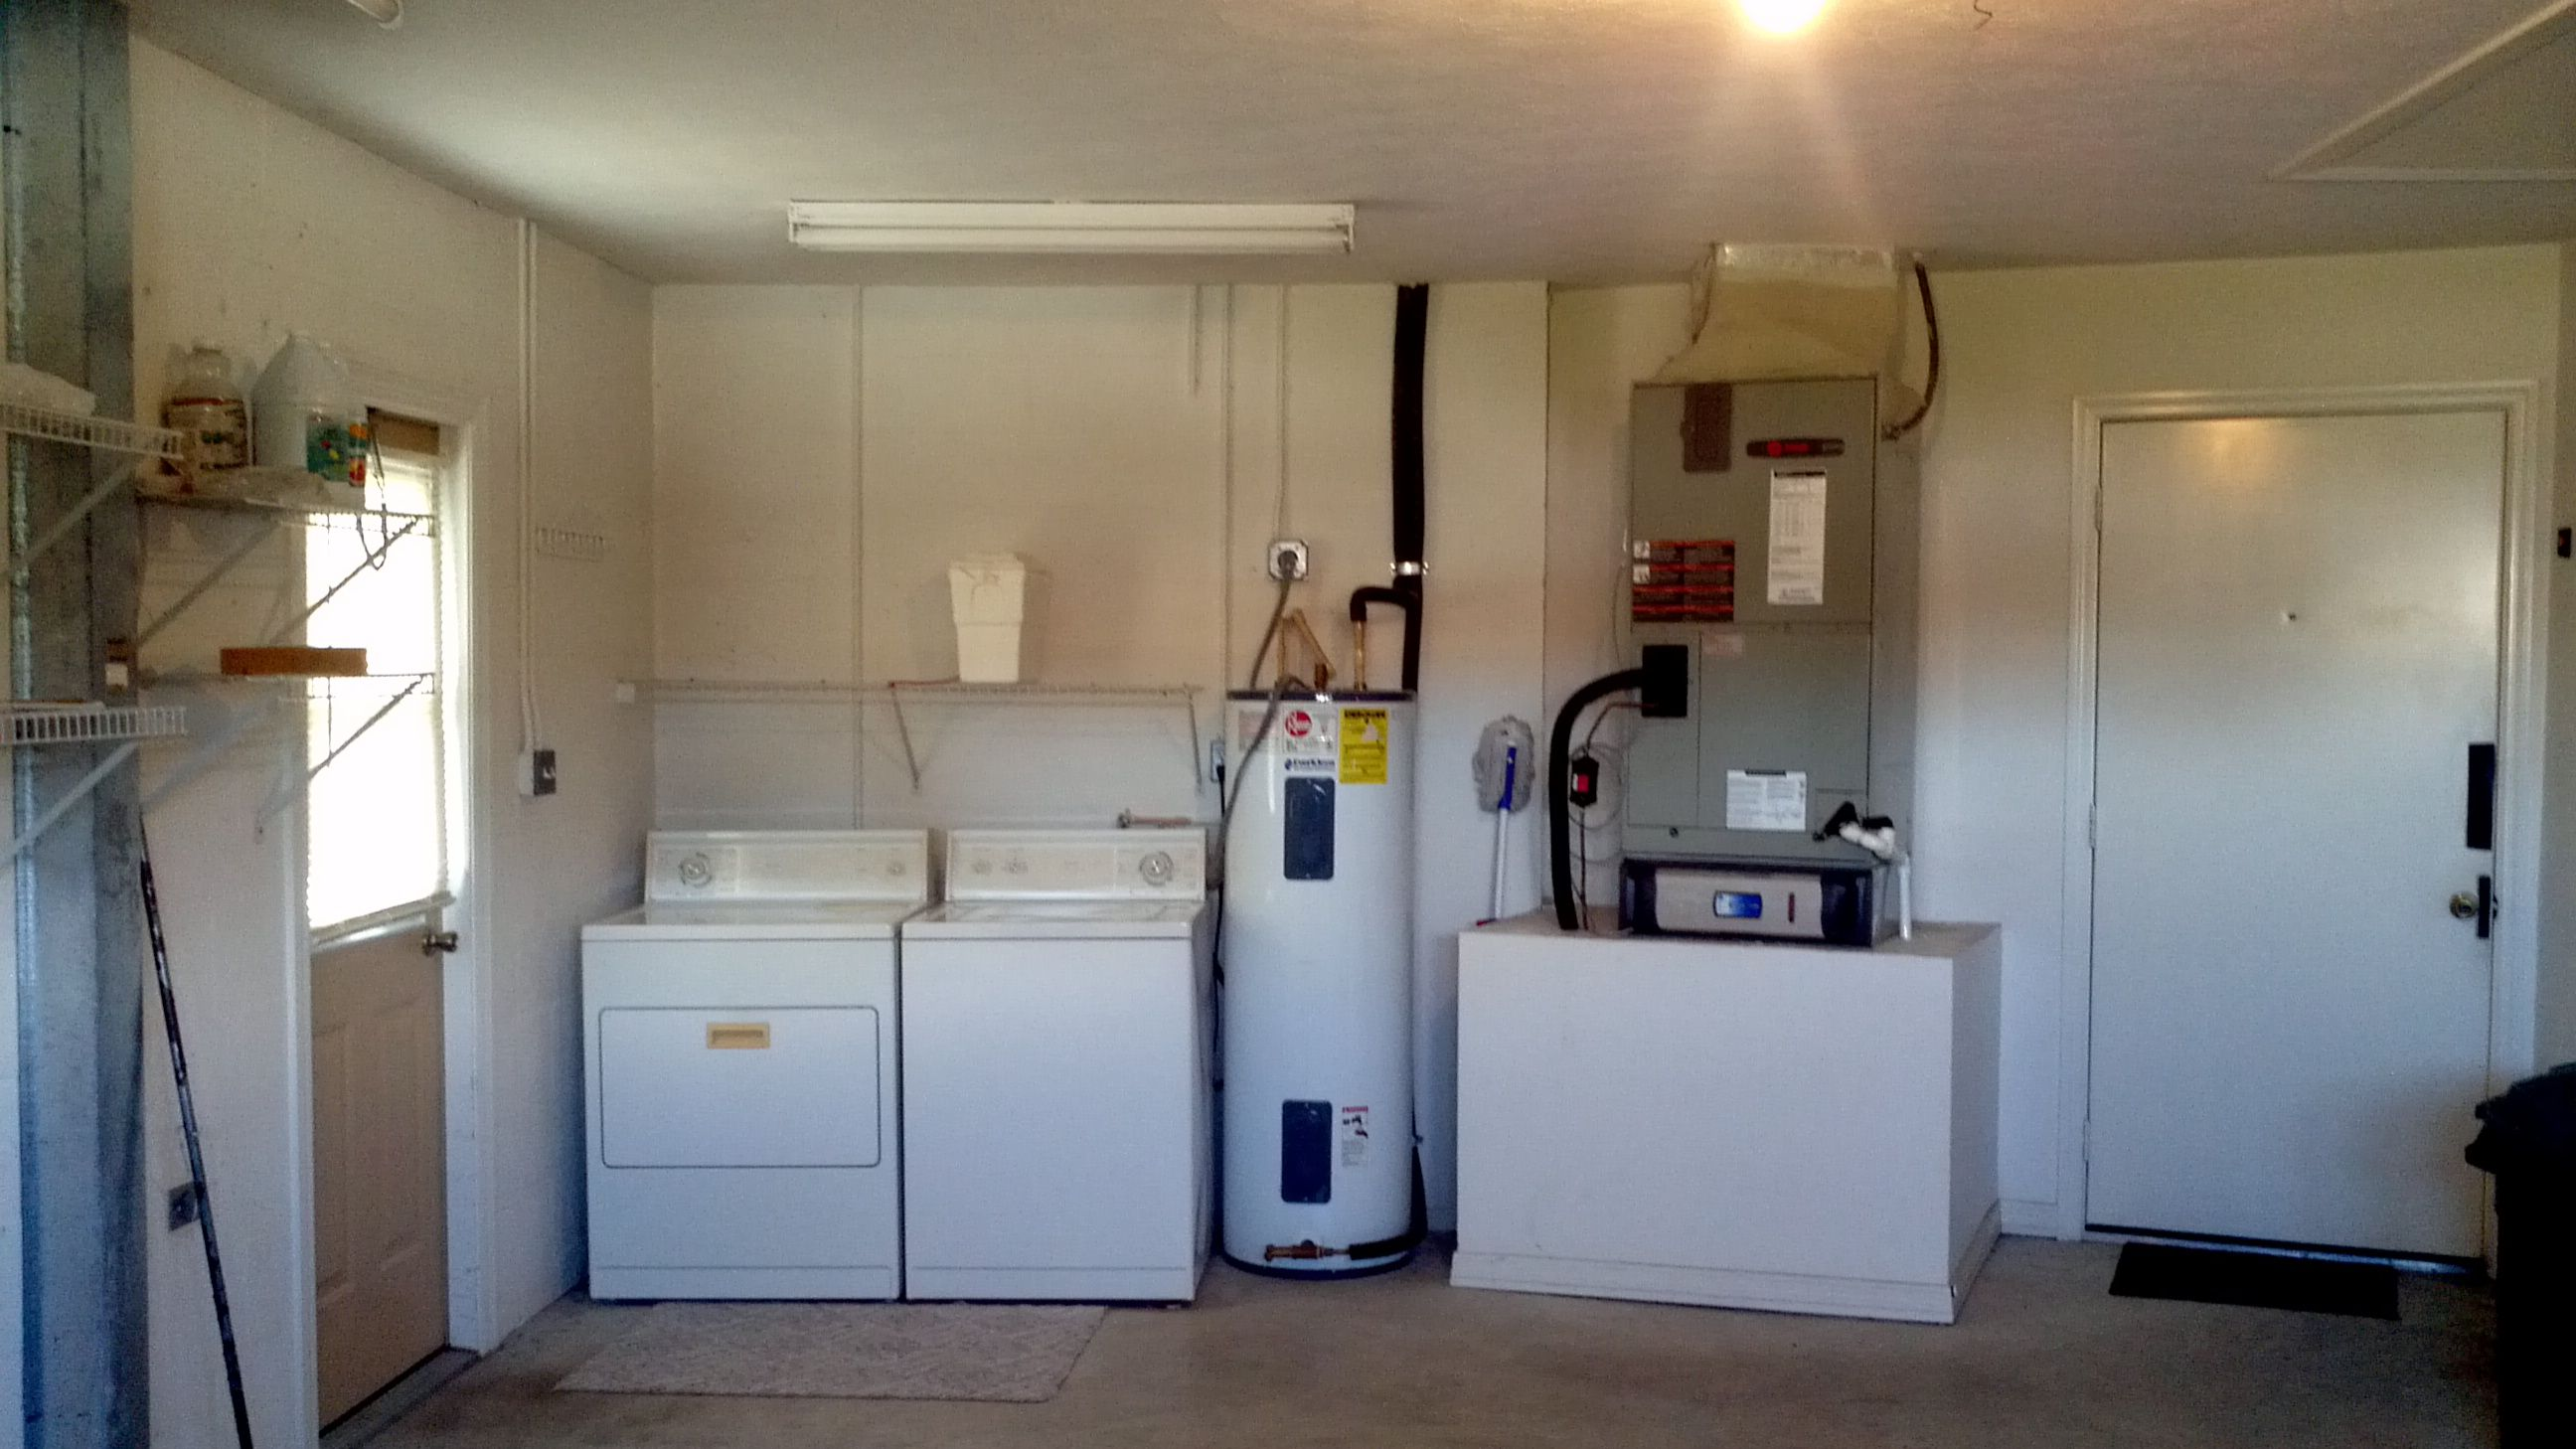 9 Washer Dryer And Utilities Are In The Garage Also No More Air Handler In The Attic No More Flooding Eva Solar Installation Wood Frame House Installation